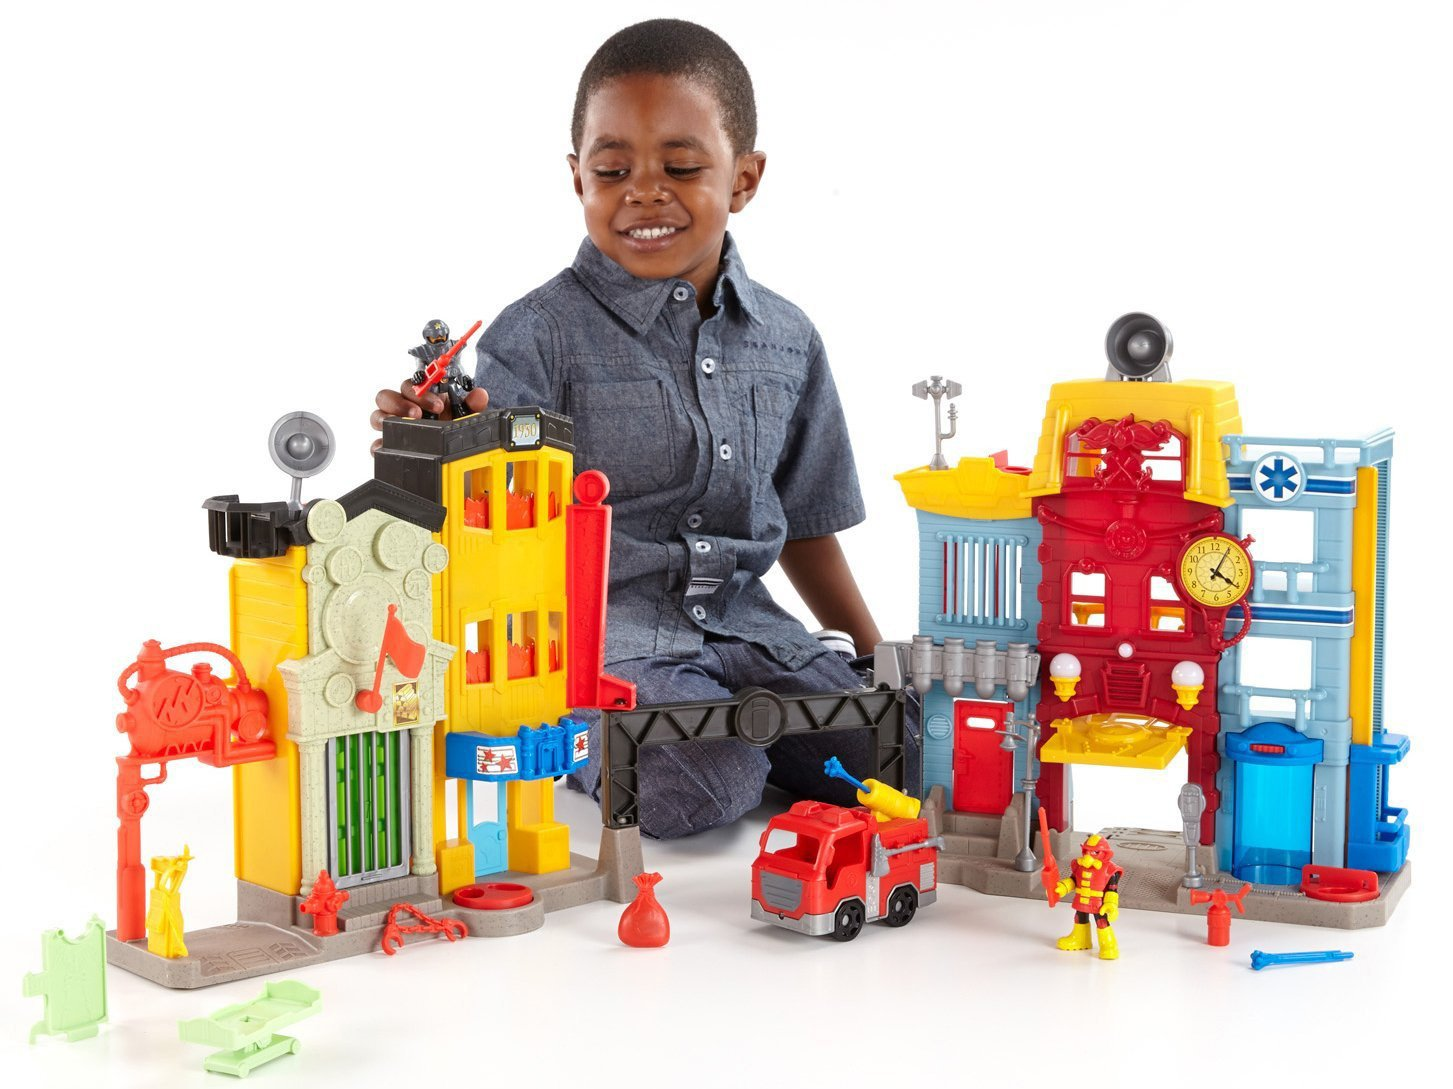 FisherPrice Adventure City with Action Tech'